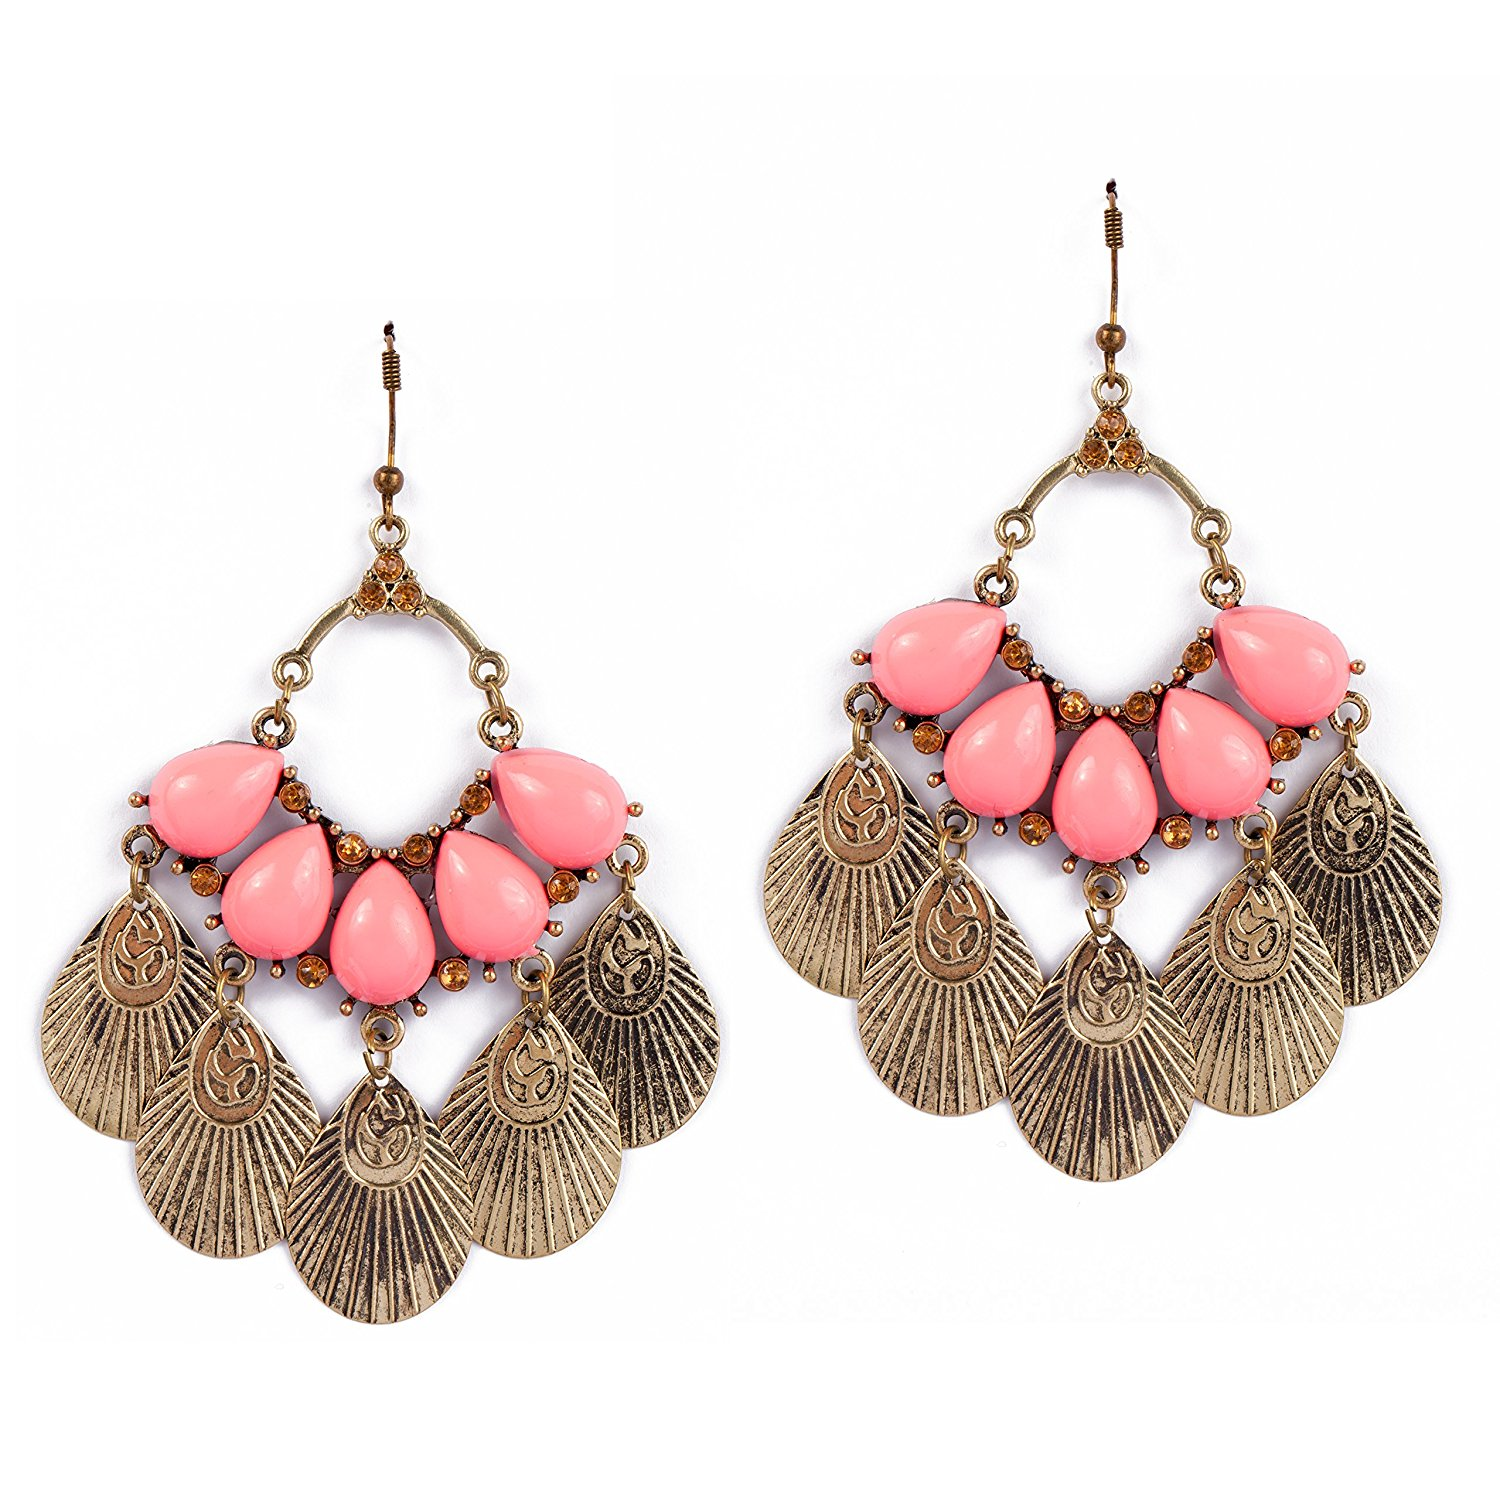 Gipsy Earrings - Pink - Chandelier Earrings - Drop Earrings - Pink Chandelier Earrings - Fashion Jewelry